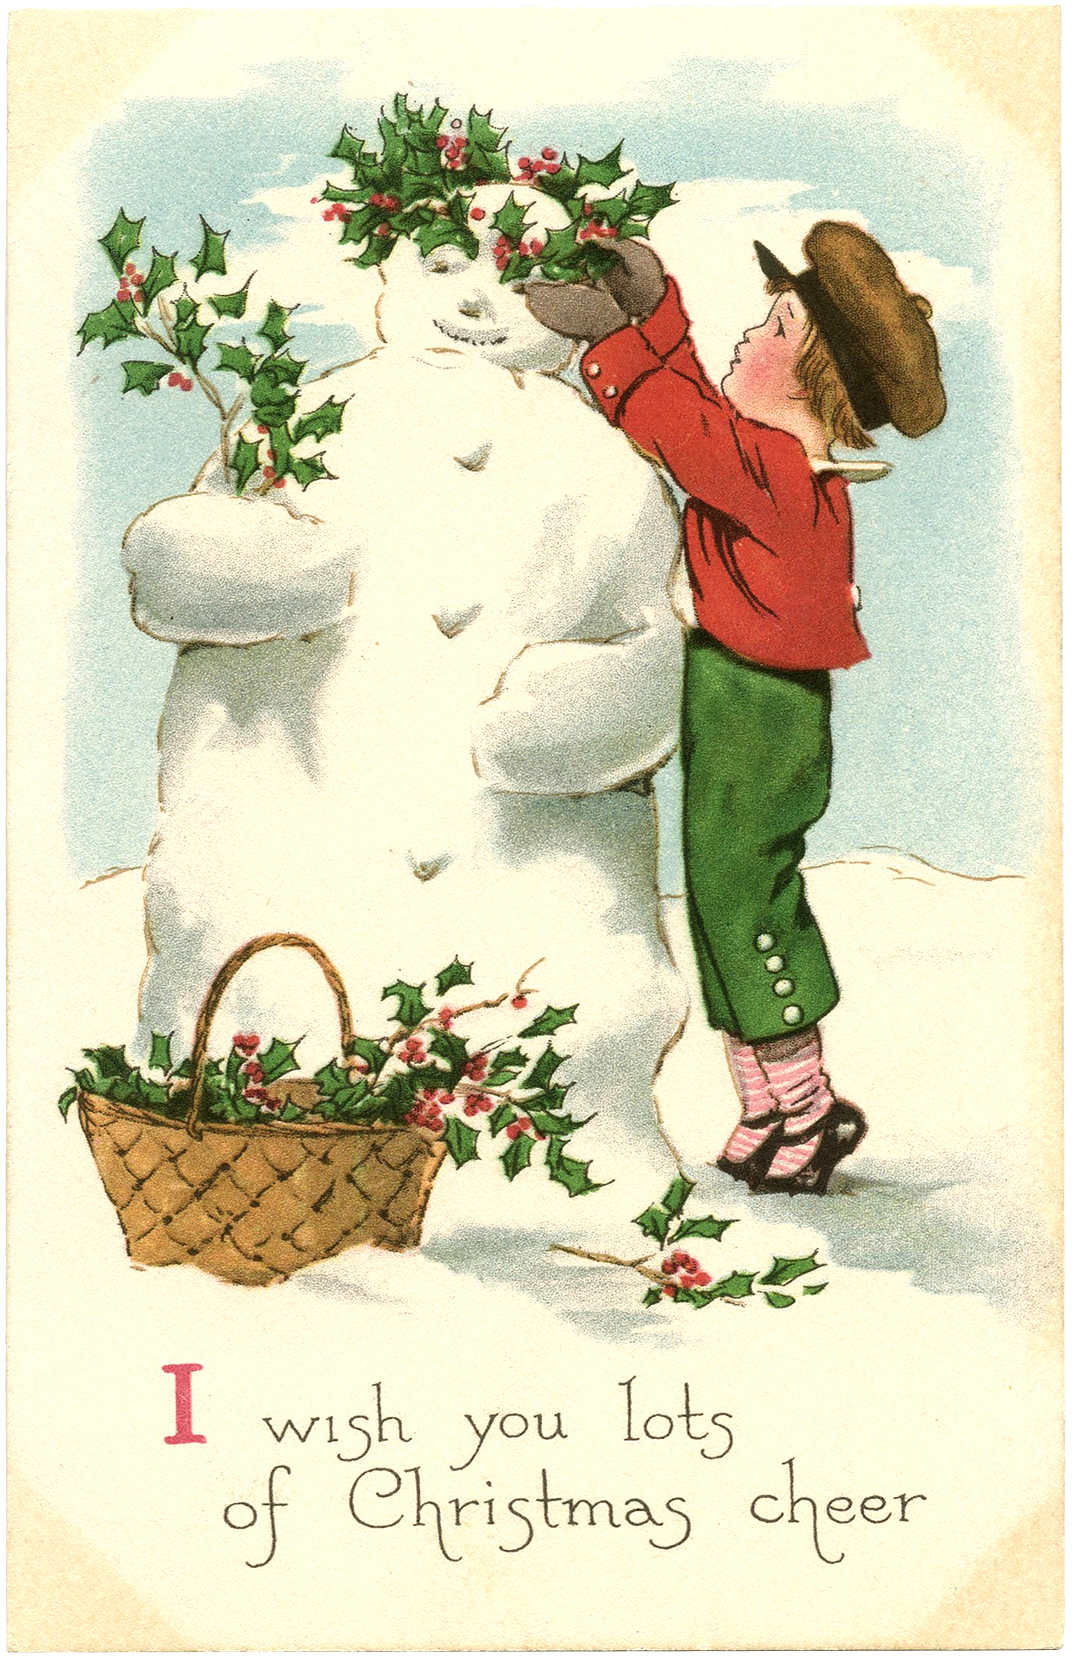 Gnome Animated Wallpaper Free Vintage Snowman Image The Graphics Fairy